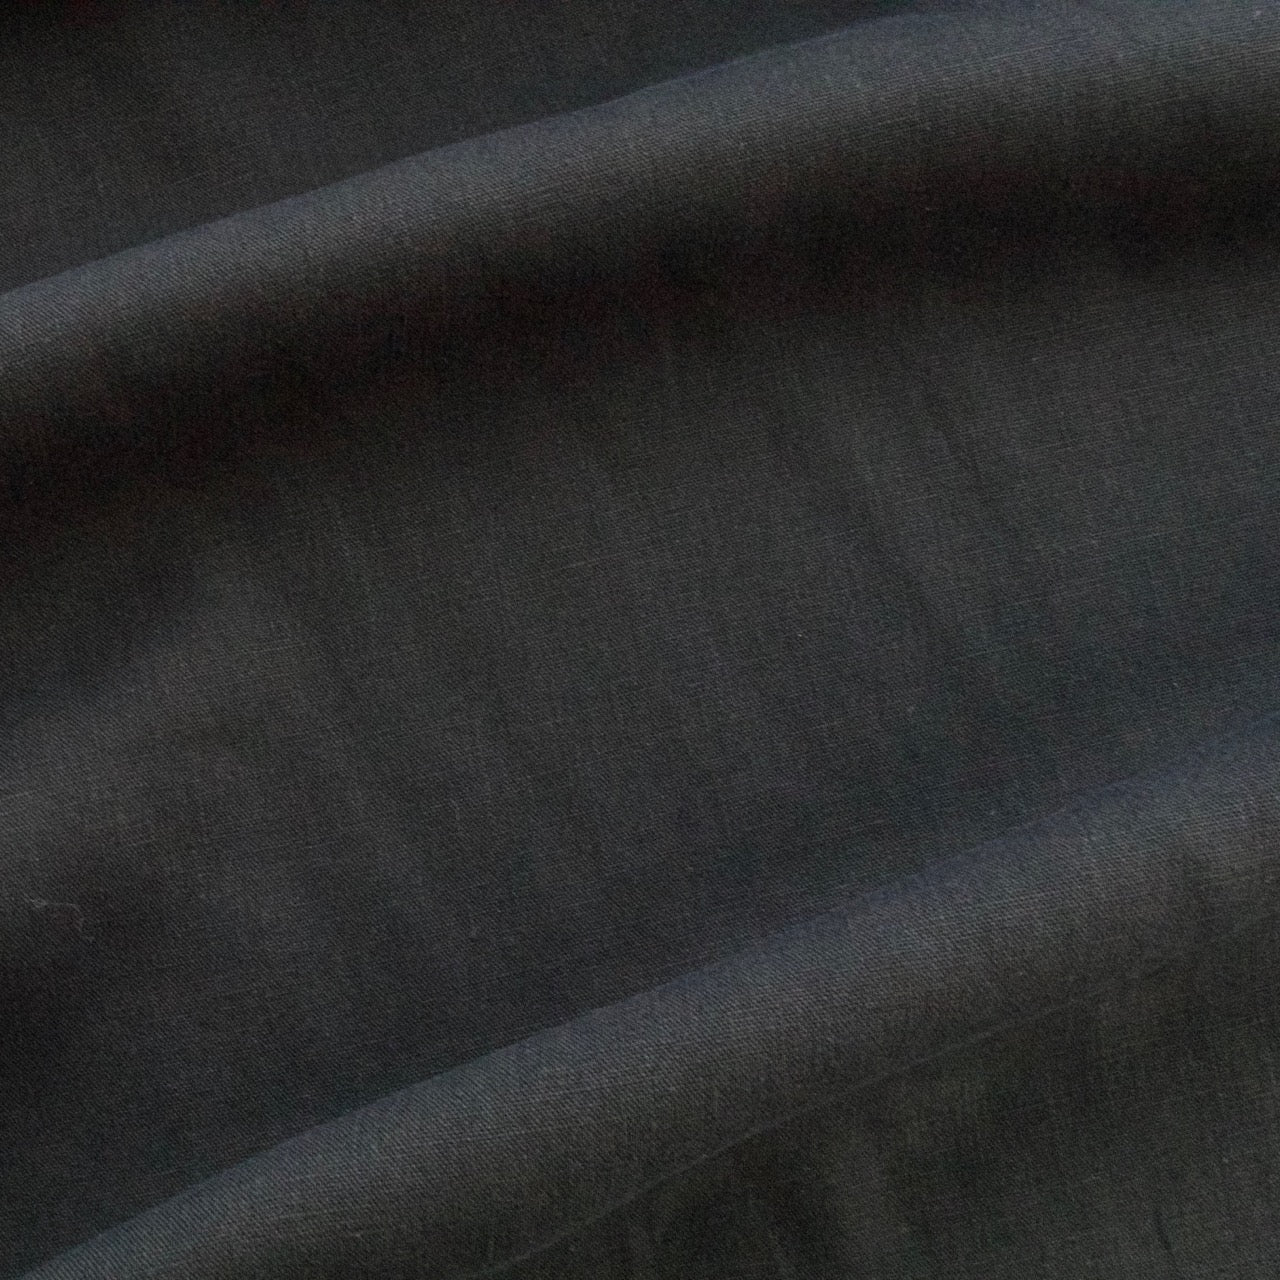 Tencel Linen - Black - MaaiDesign